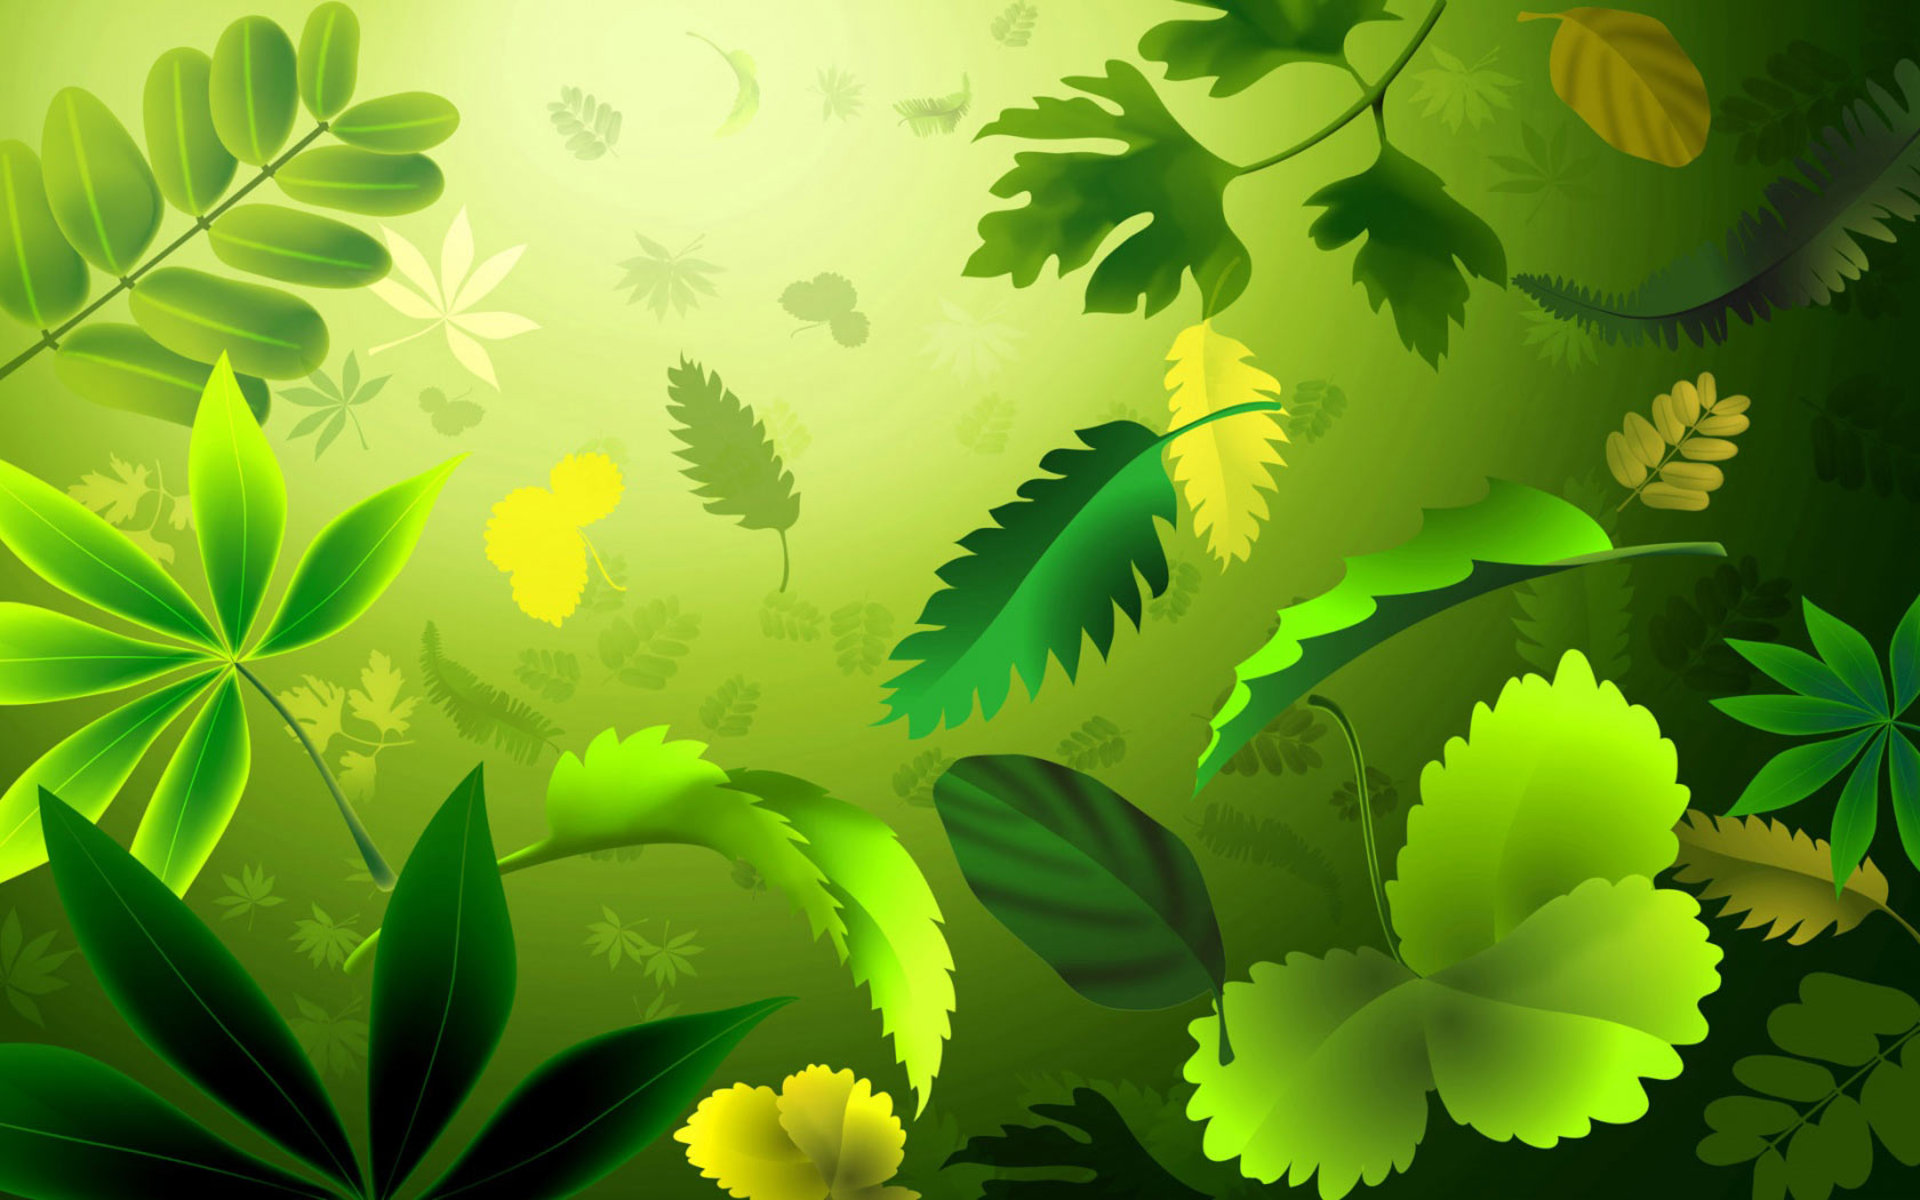 Background clipart forest. Hd wallpaper images download